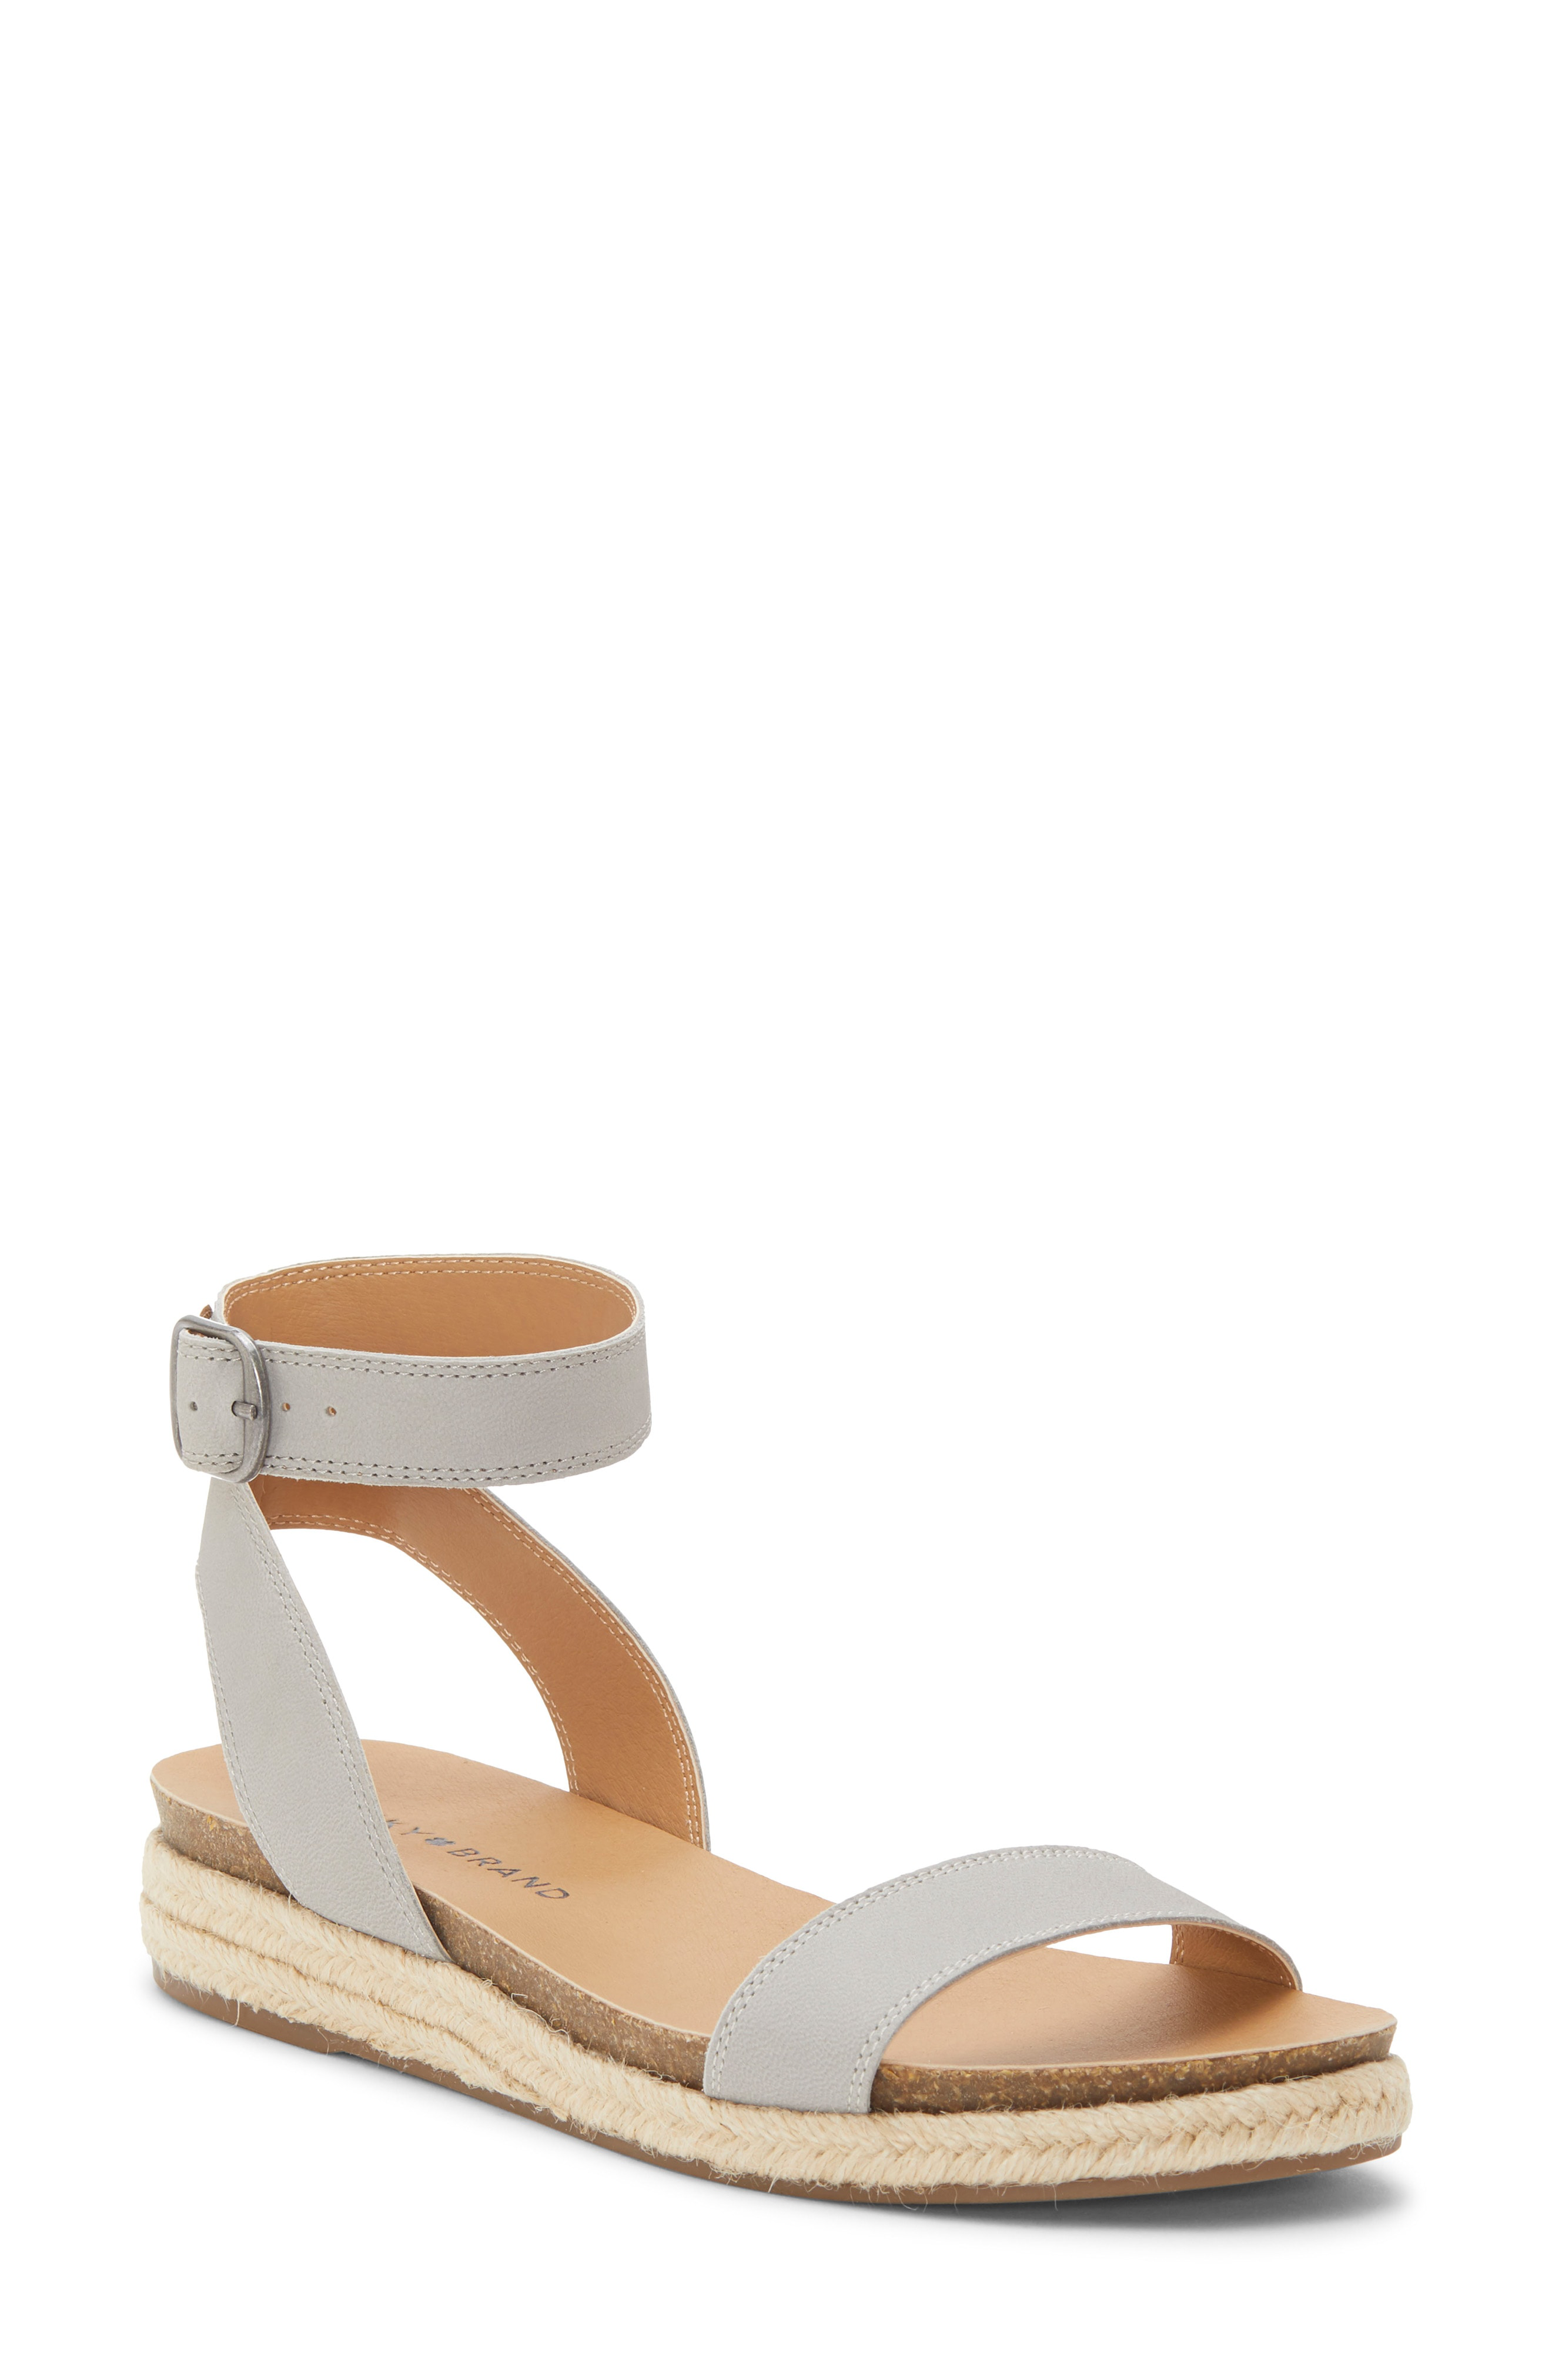 8b210ea554c73 Lucky Brand Garston Espadrille Sandal In Chinchilla Leather